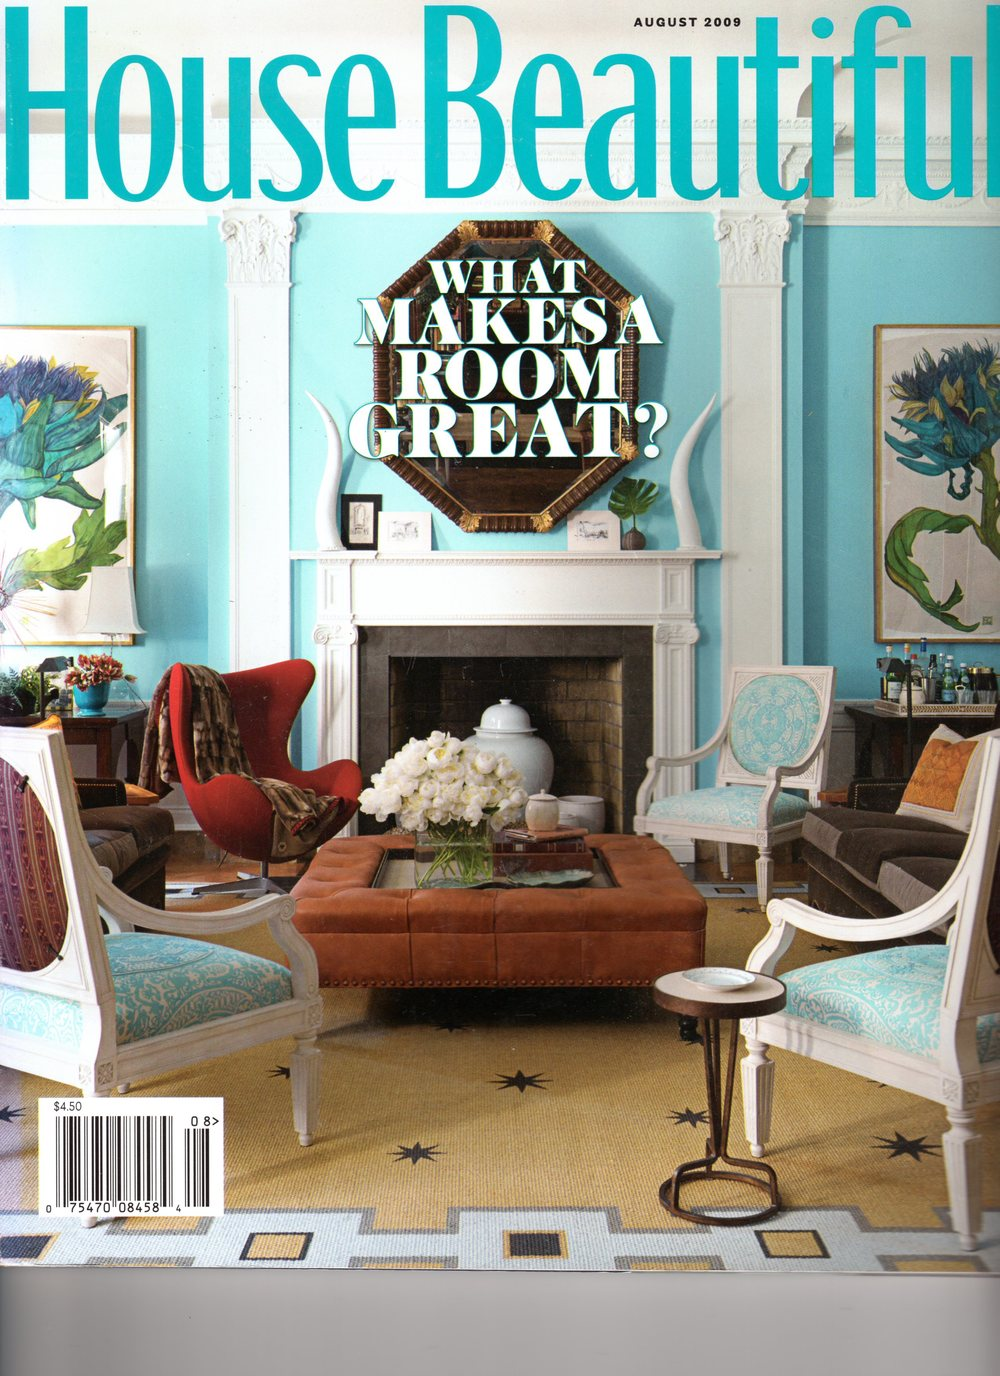 house beautiful August 2009 cover.jpg